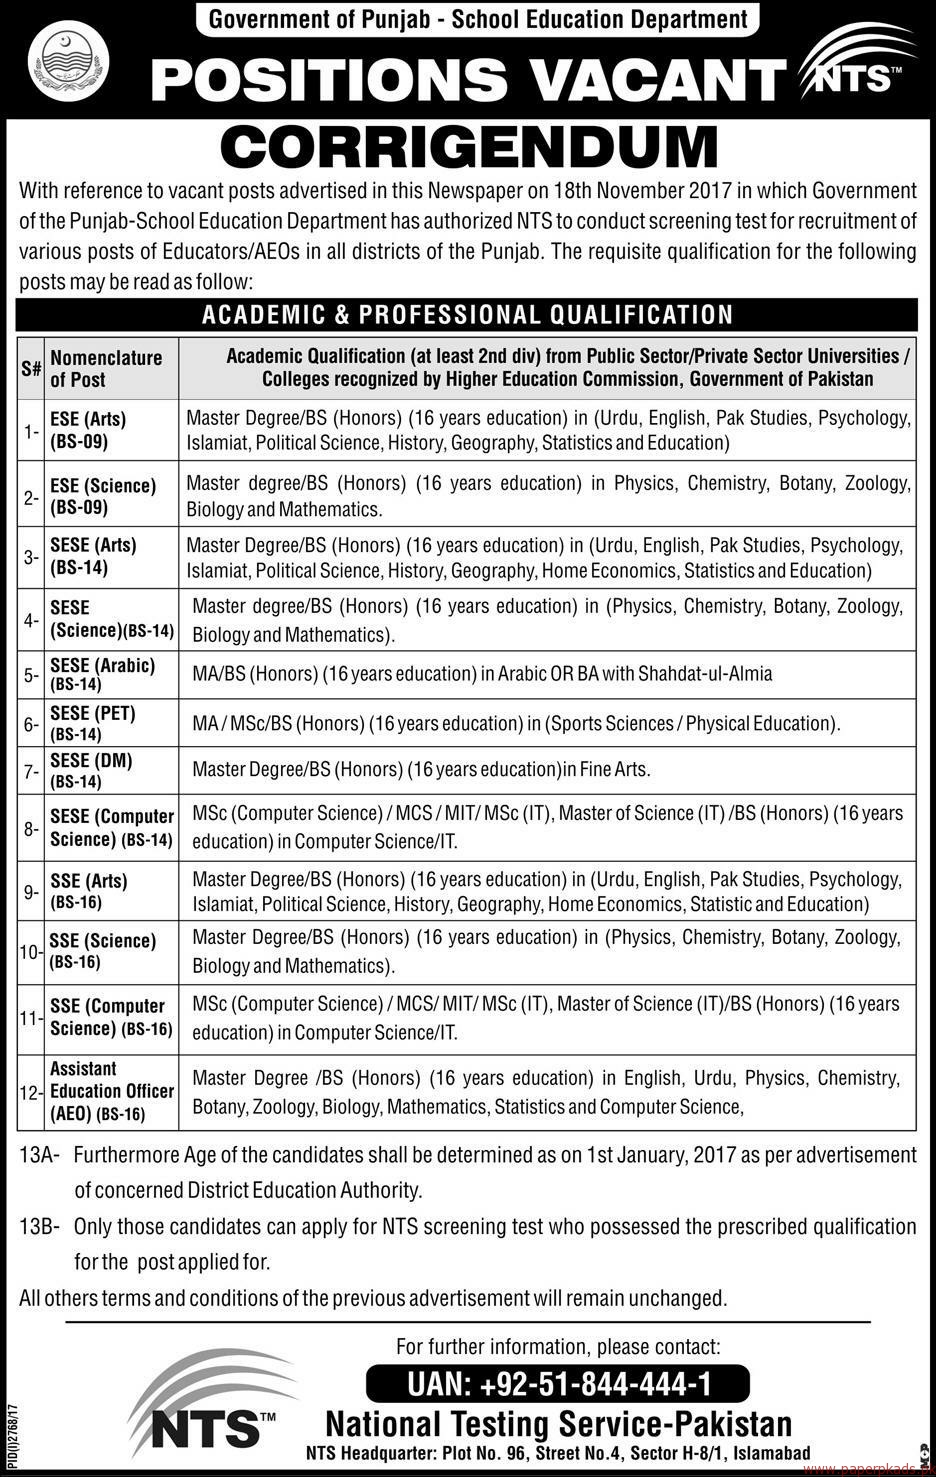 Government of Punjab - School Education Department Jobs 2017